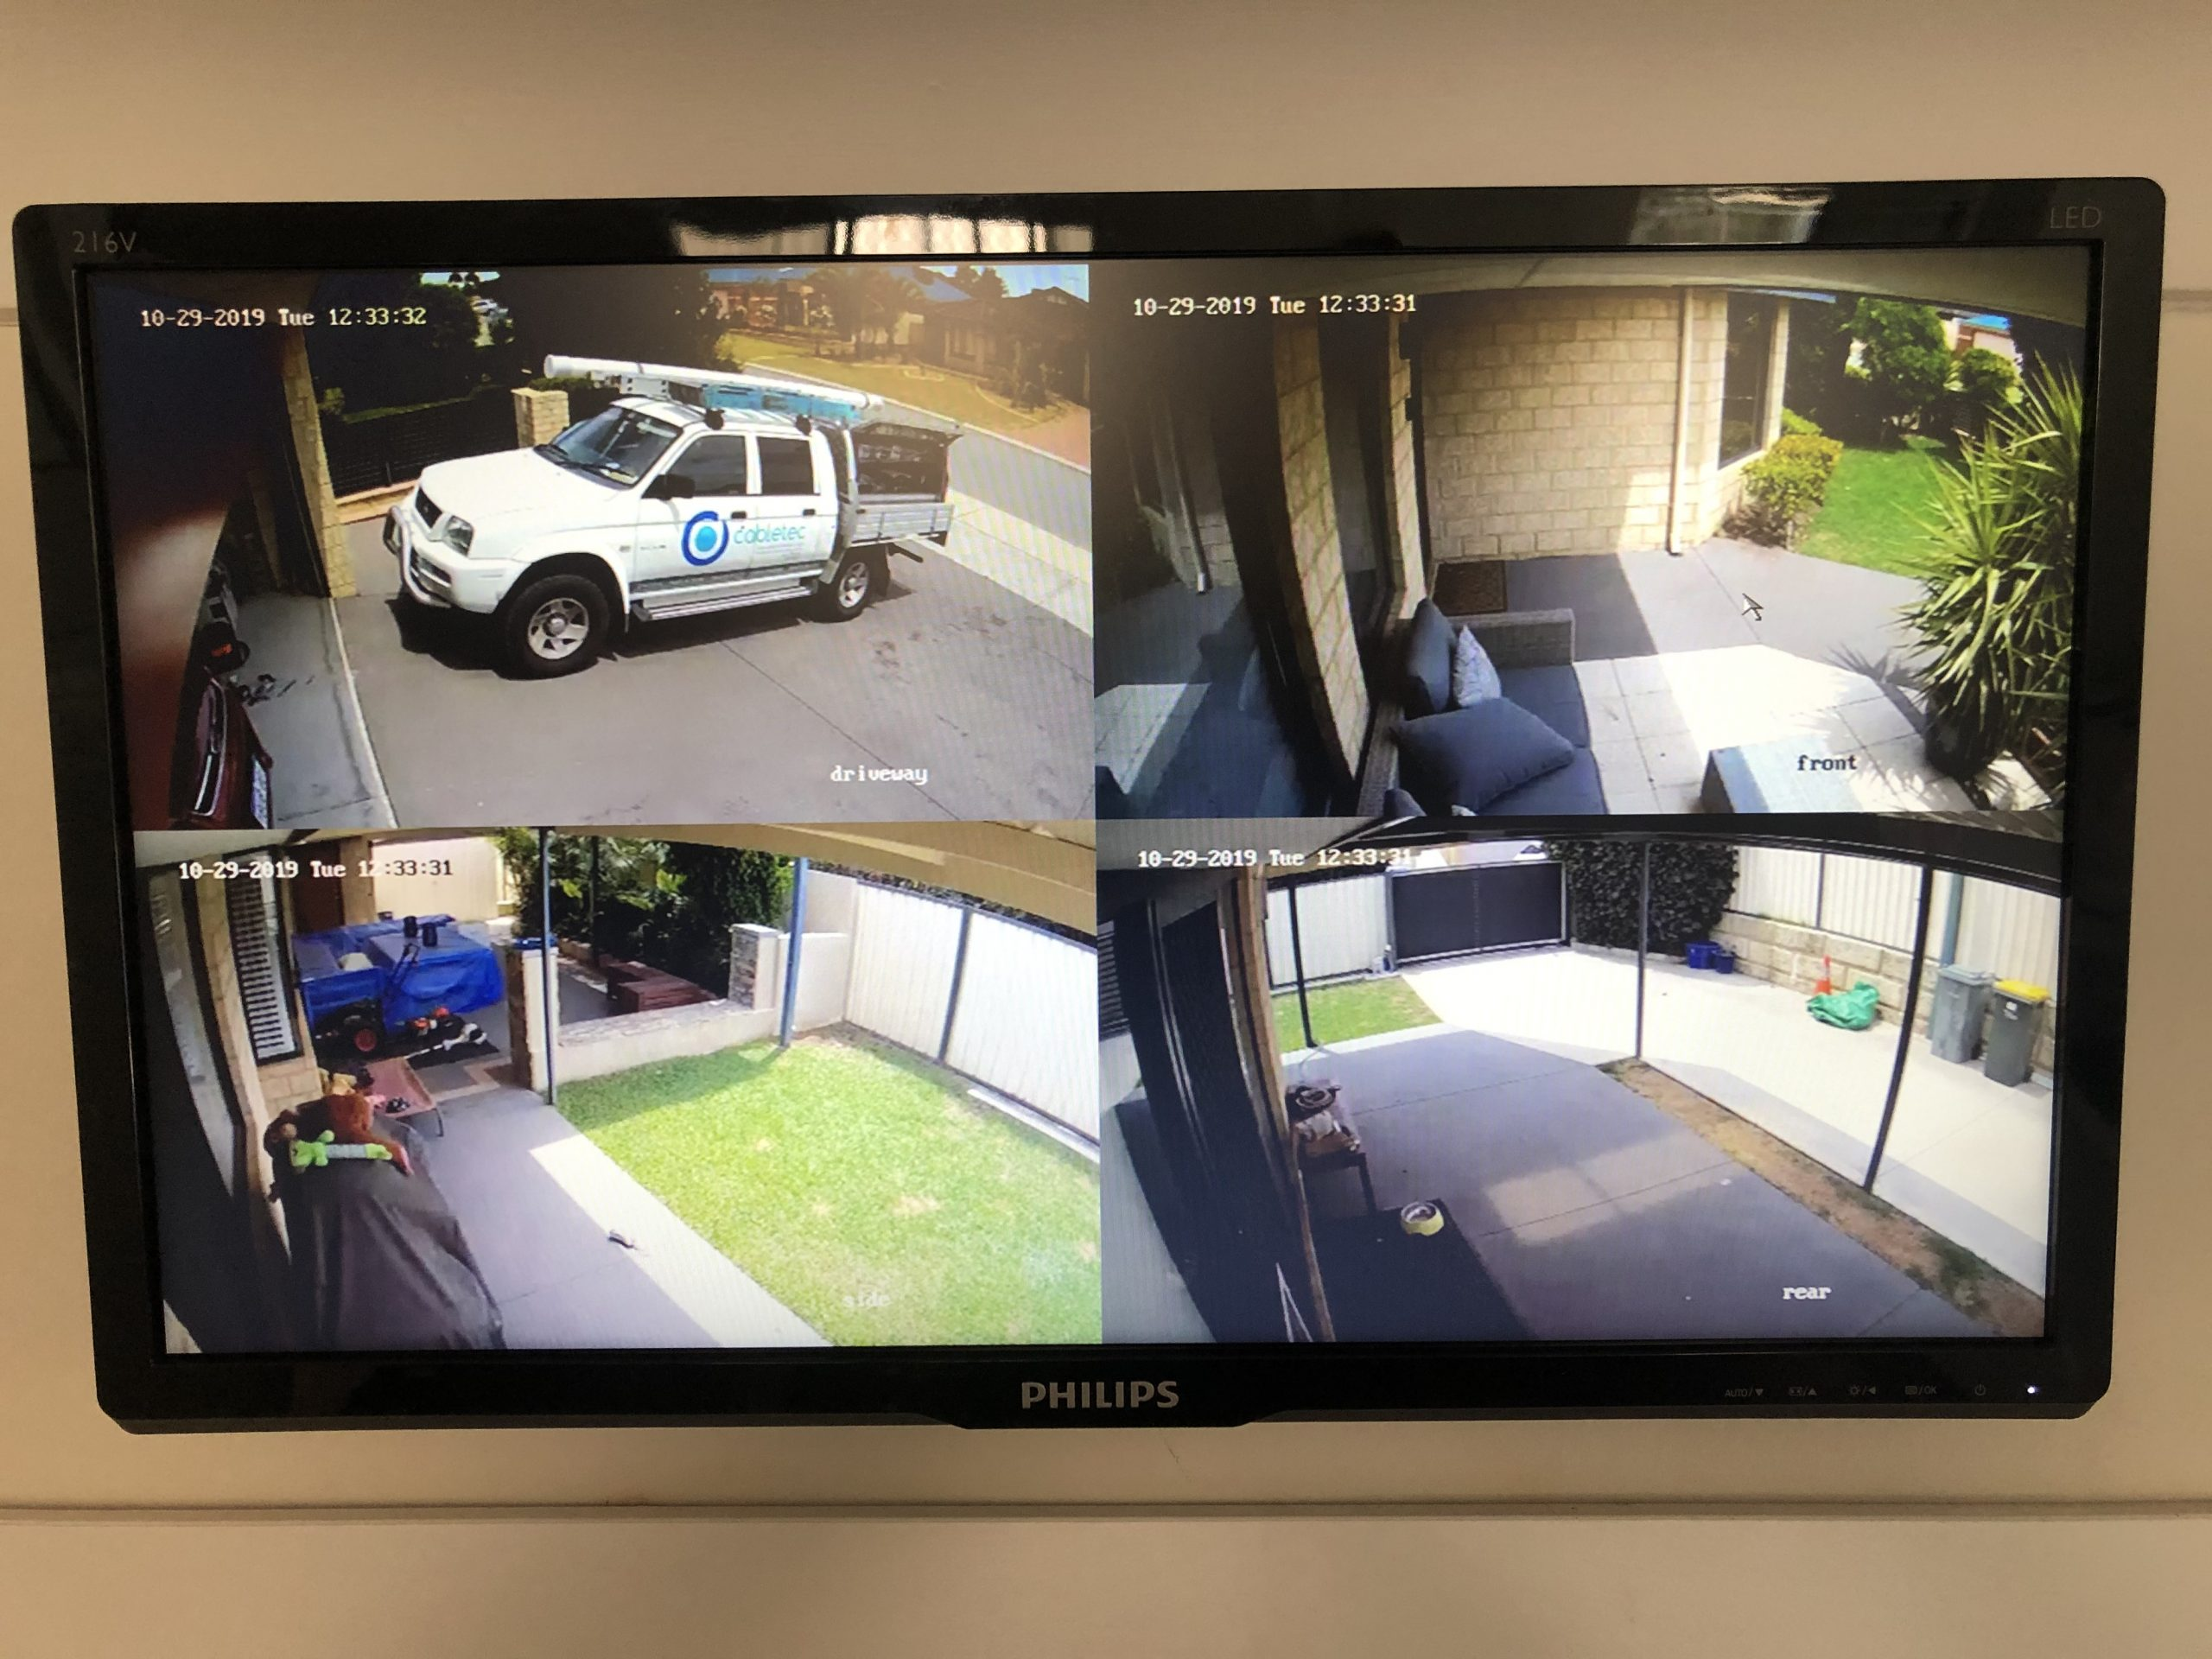 A HIKVision camera package installed by Cabletec Services in Perth